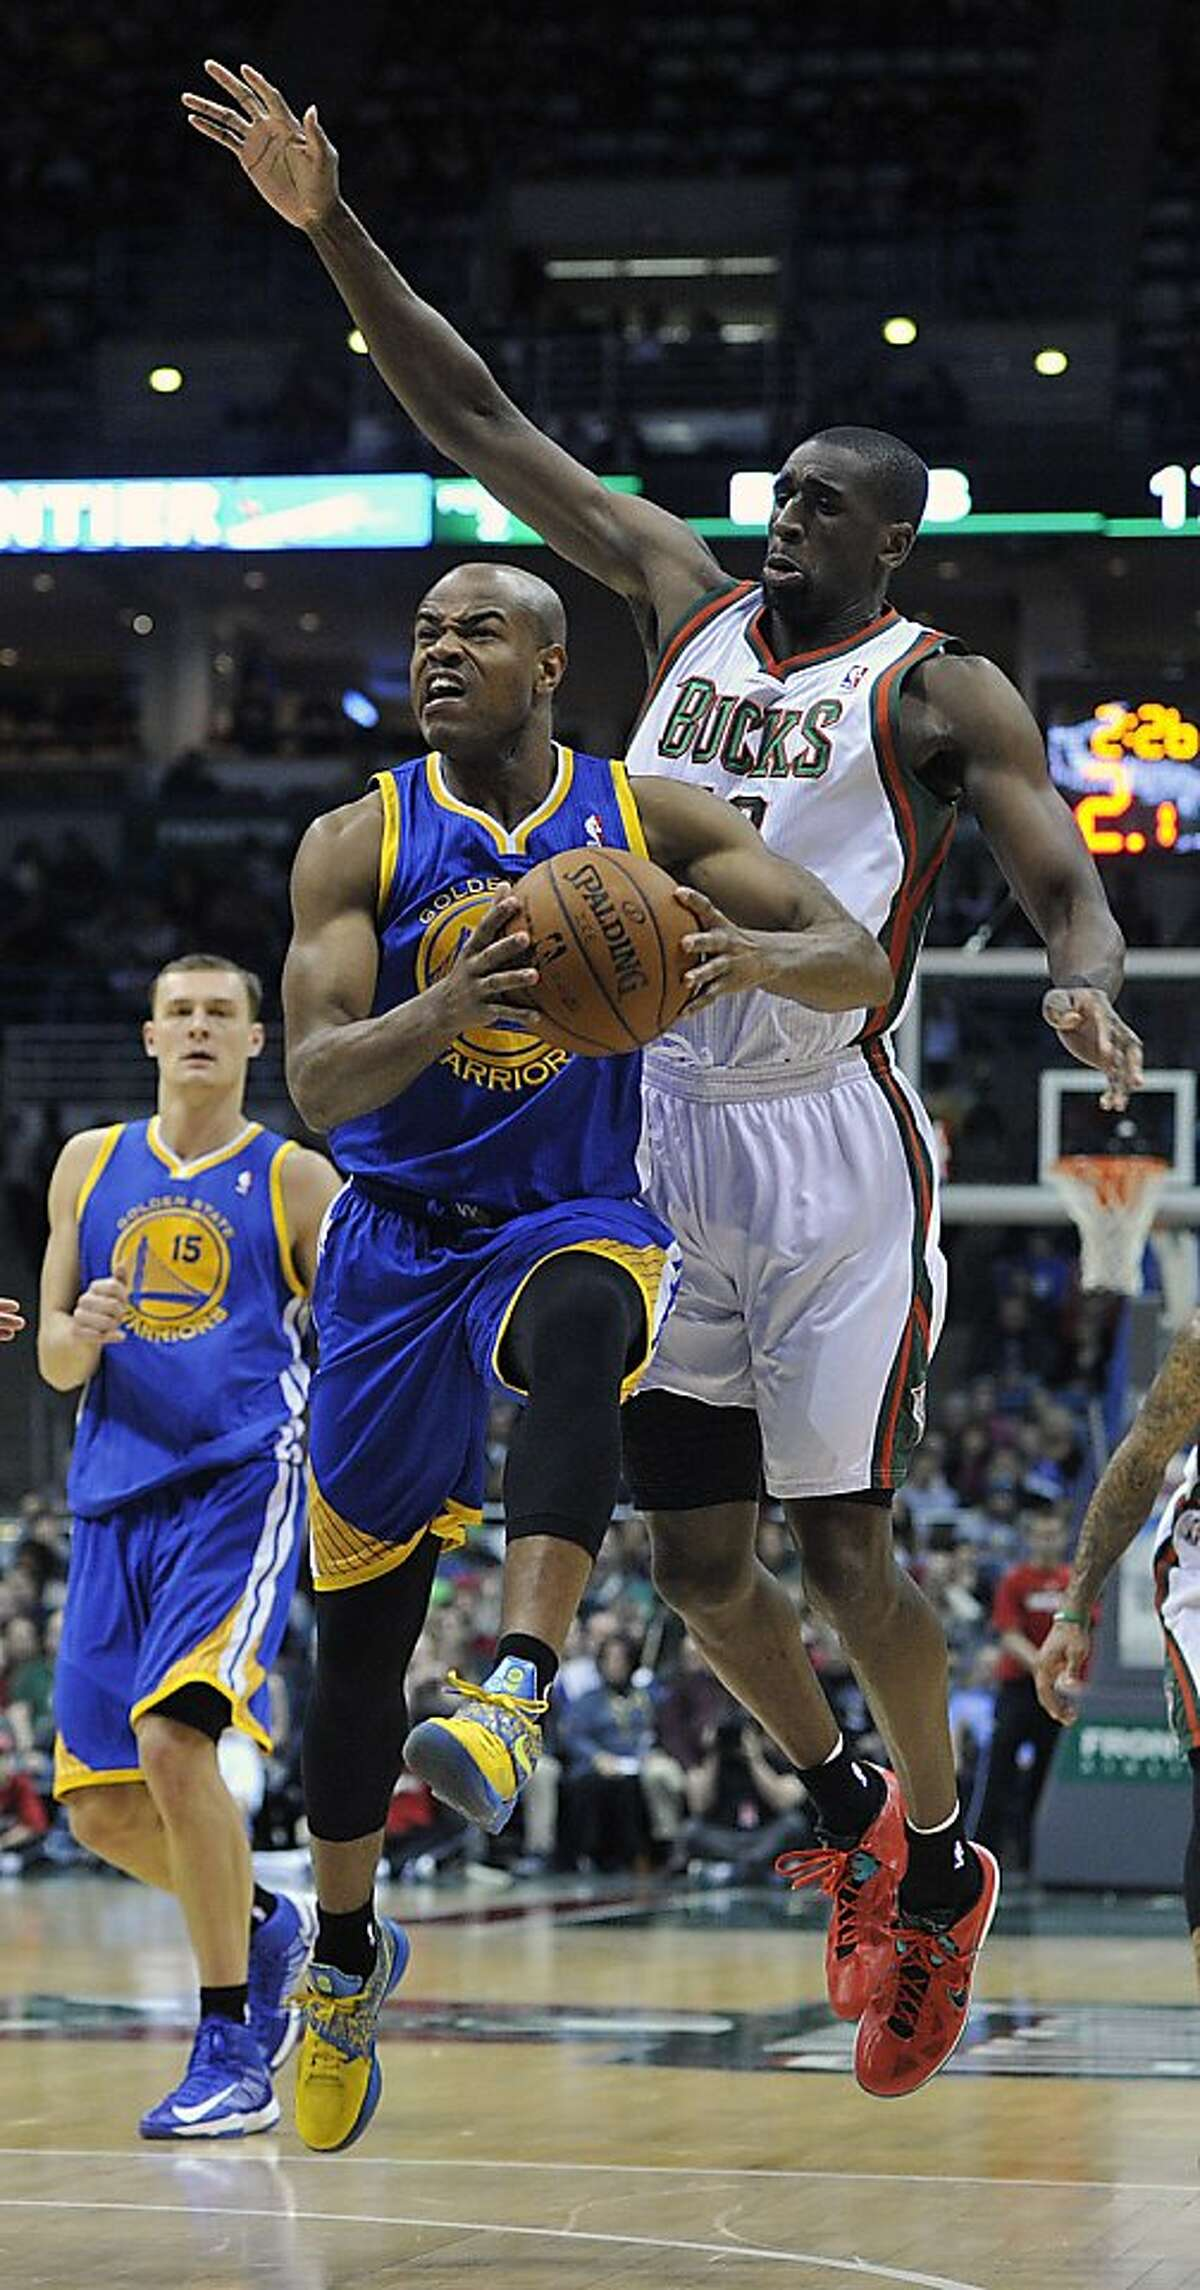 Golden State Warriors' Jarrett Jack, front left, drives to the basket around Milwaukee Bucks' Ekpe Udoh during the first half of an NBA basketball game on Saturday, Jan. 26, 2013, in Milwaukee. (AP Photo/Jim Prisching)